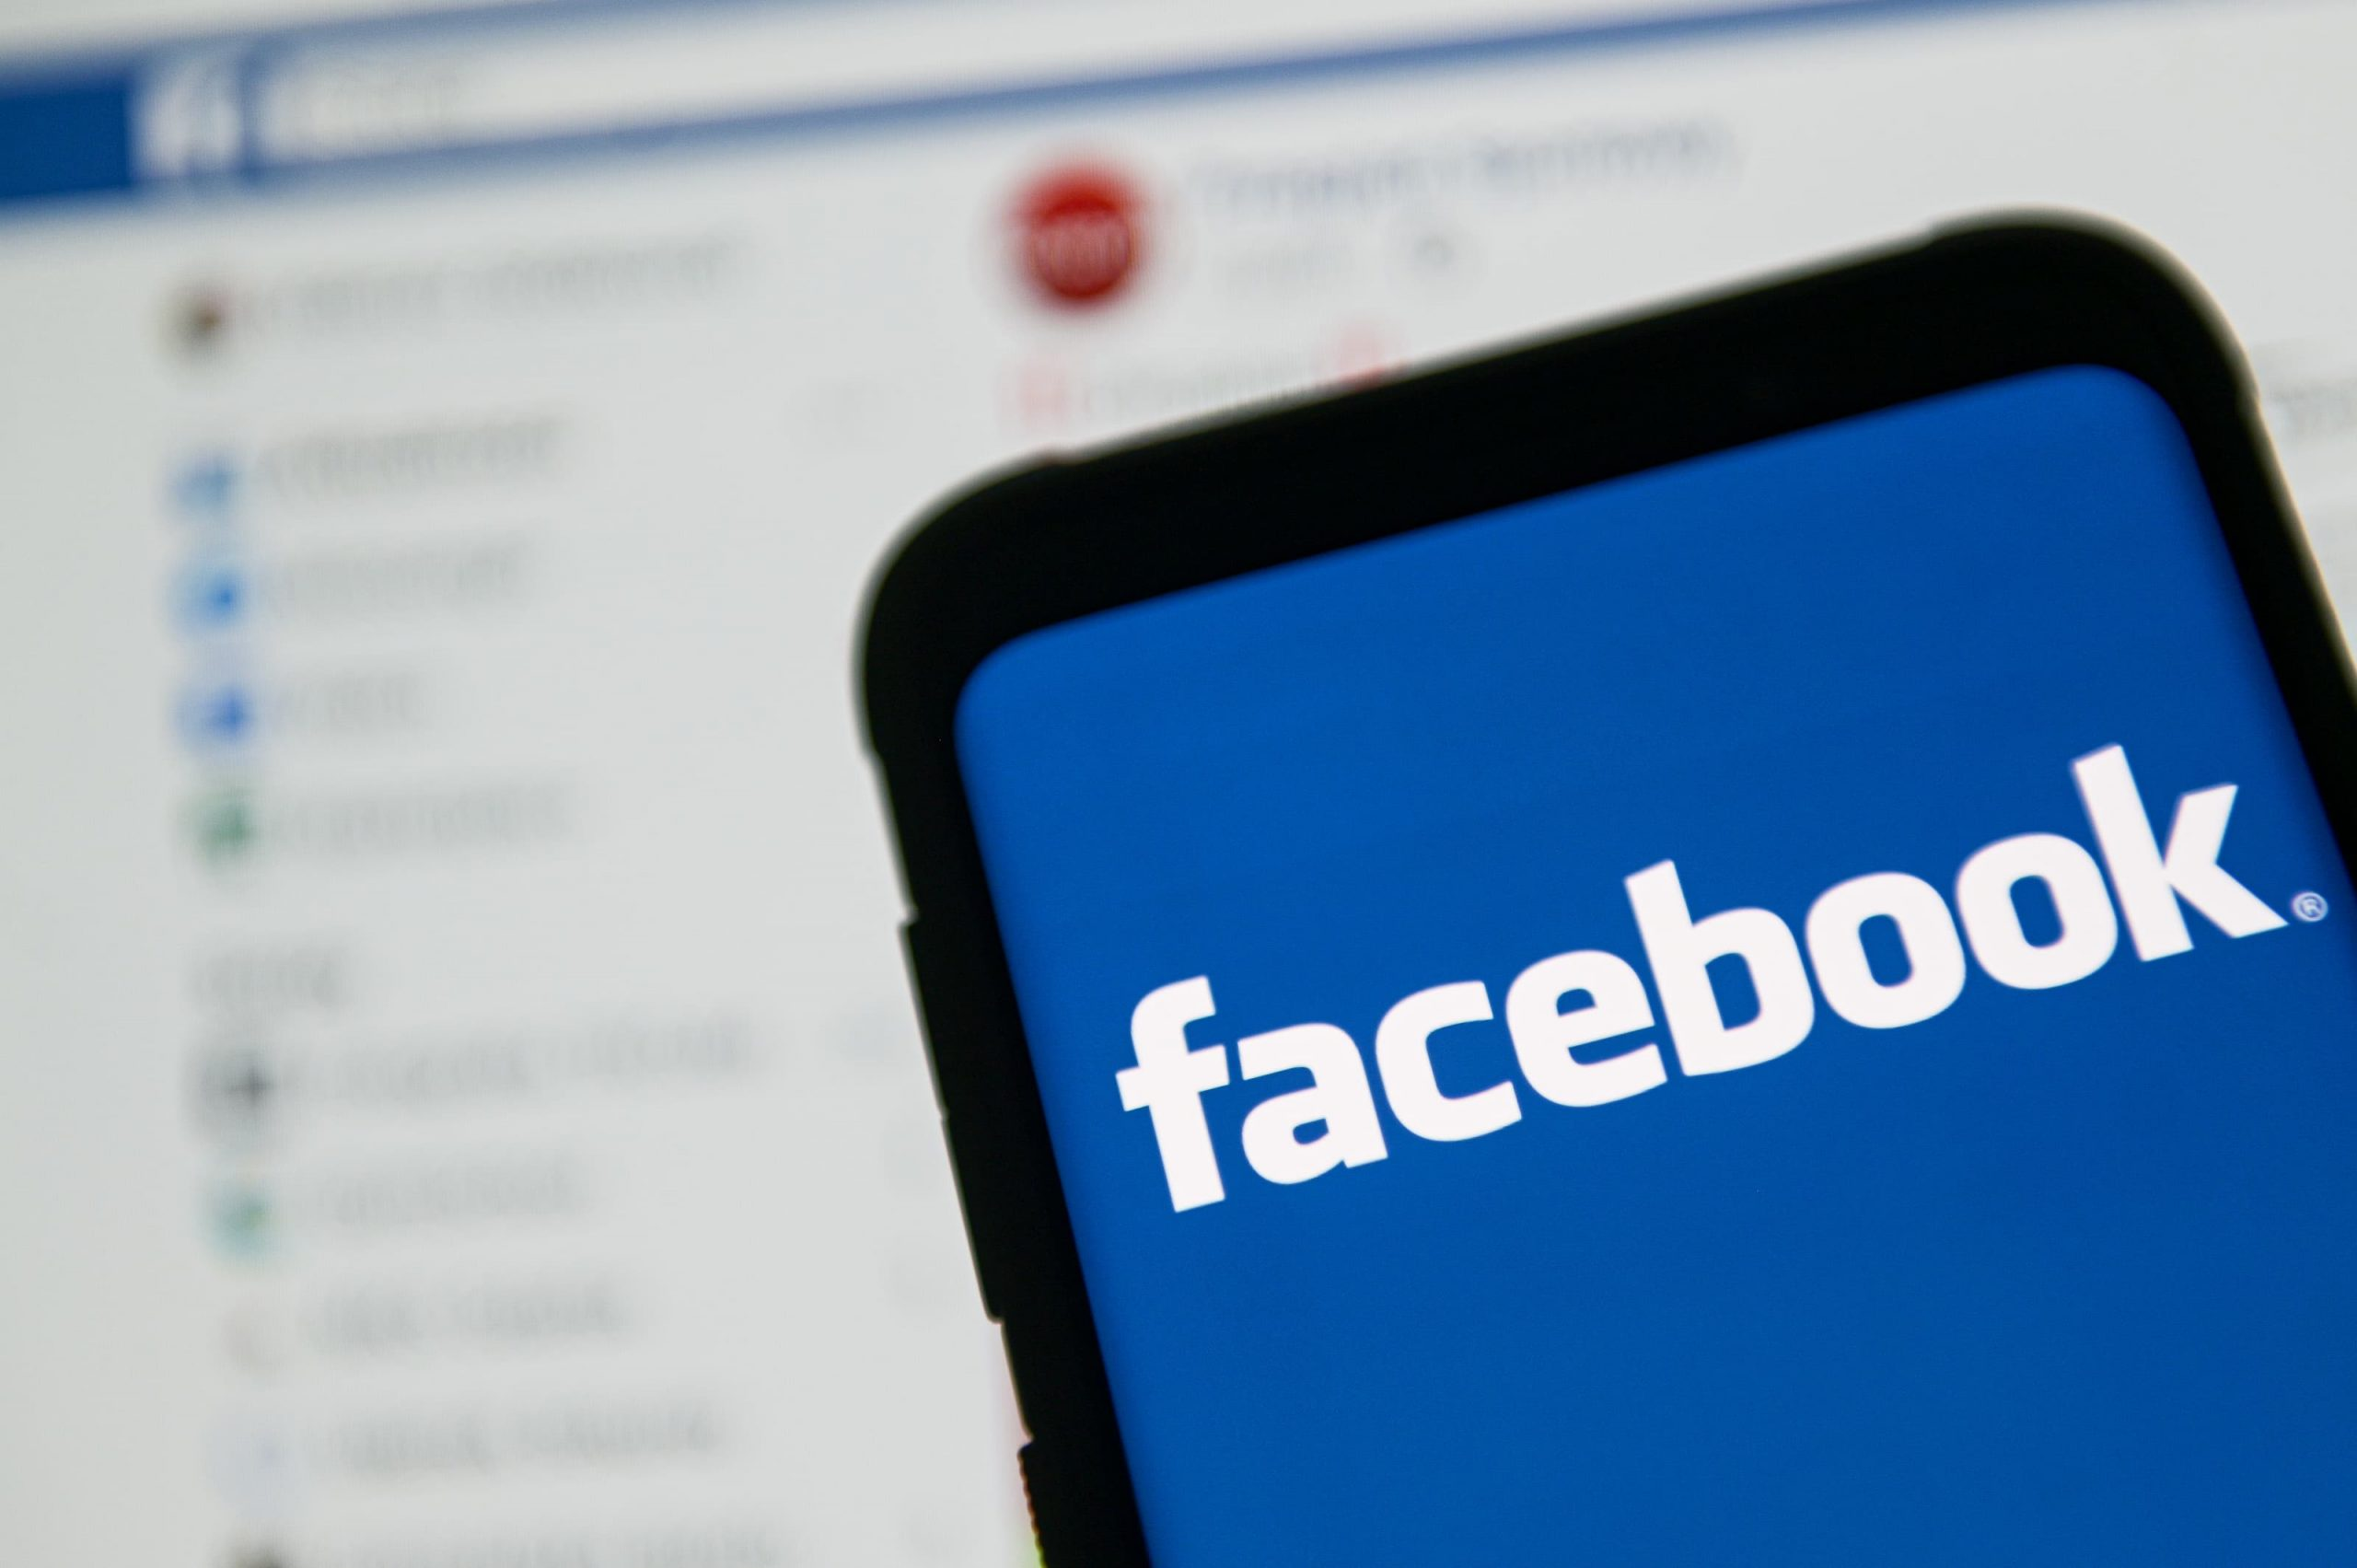 Facebook is taking on Clubhouse, Substack with new features